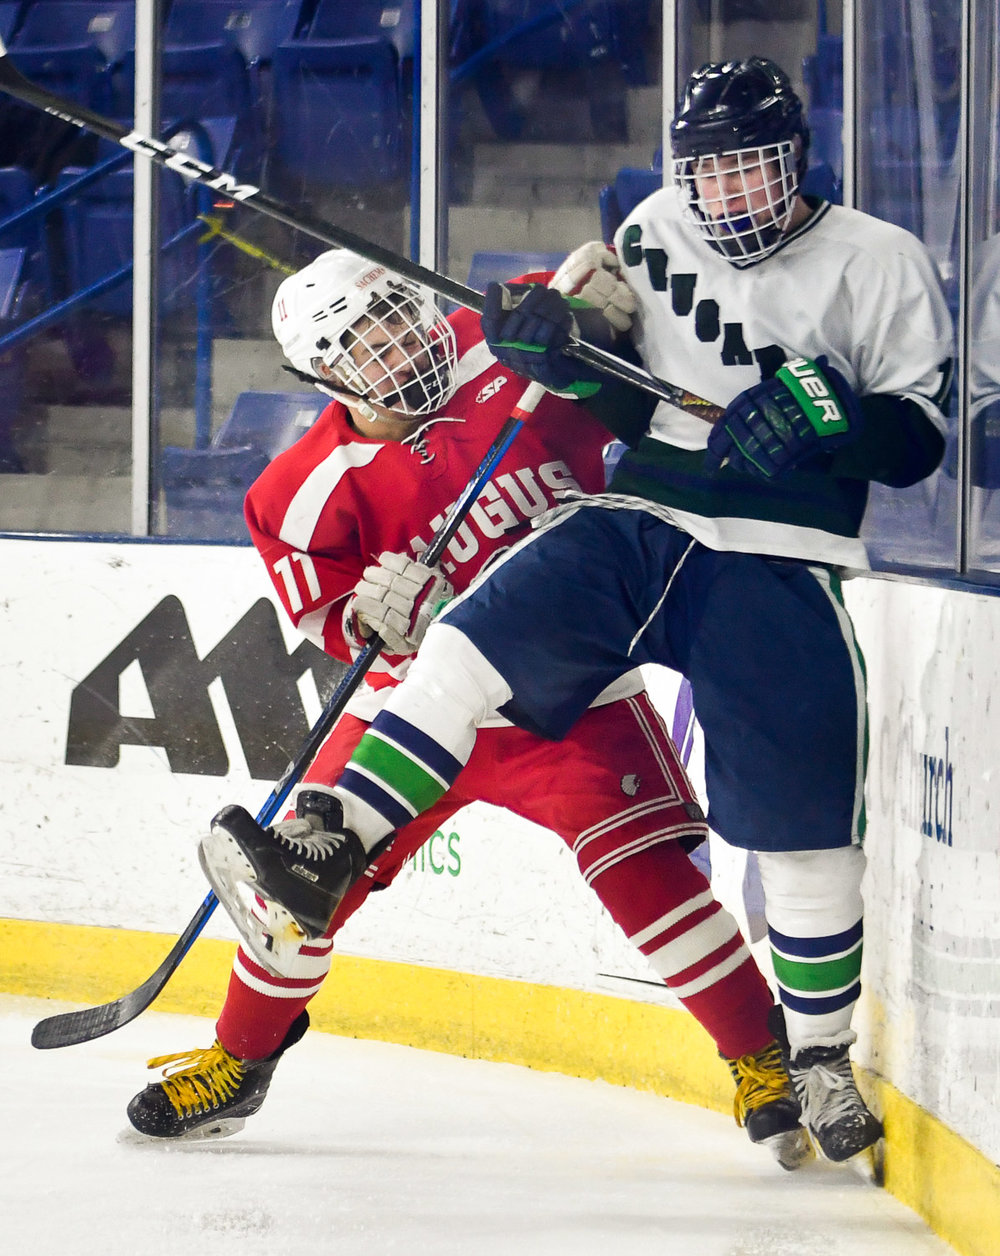 Nikon D4s, 1/1,250 @ f/2.8, ISO 1,250, 70-200mm Ryan Groark of Saugus checks Michael Talbot of Lowell Catholic against the boards during their game at the Tsongas Center at UMass Lowell.